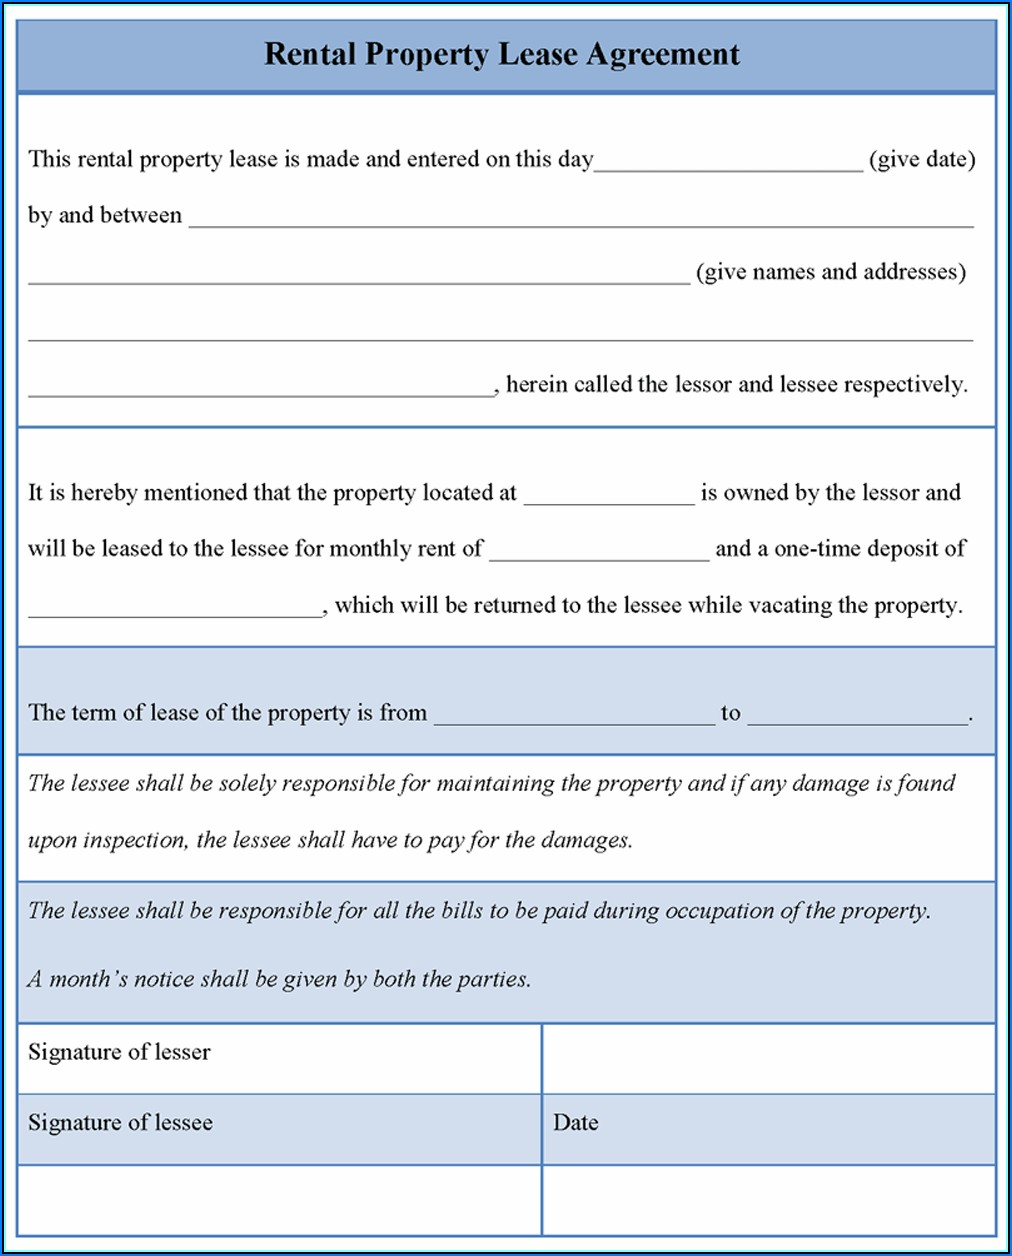 Template Of Lease Agreement For Property